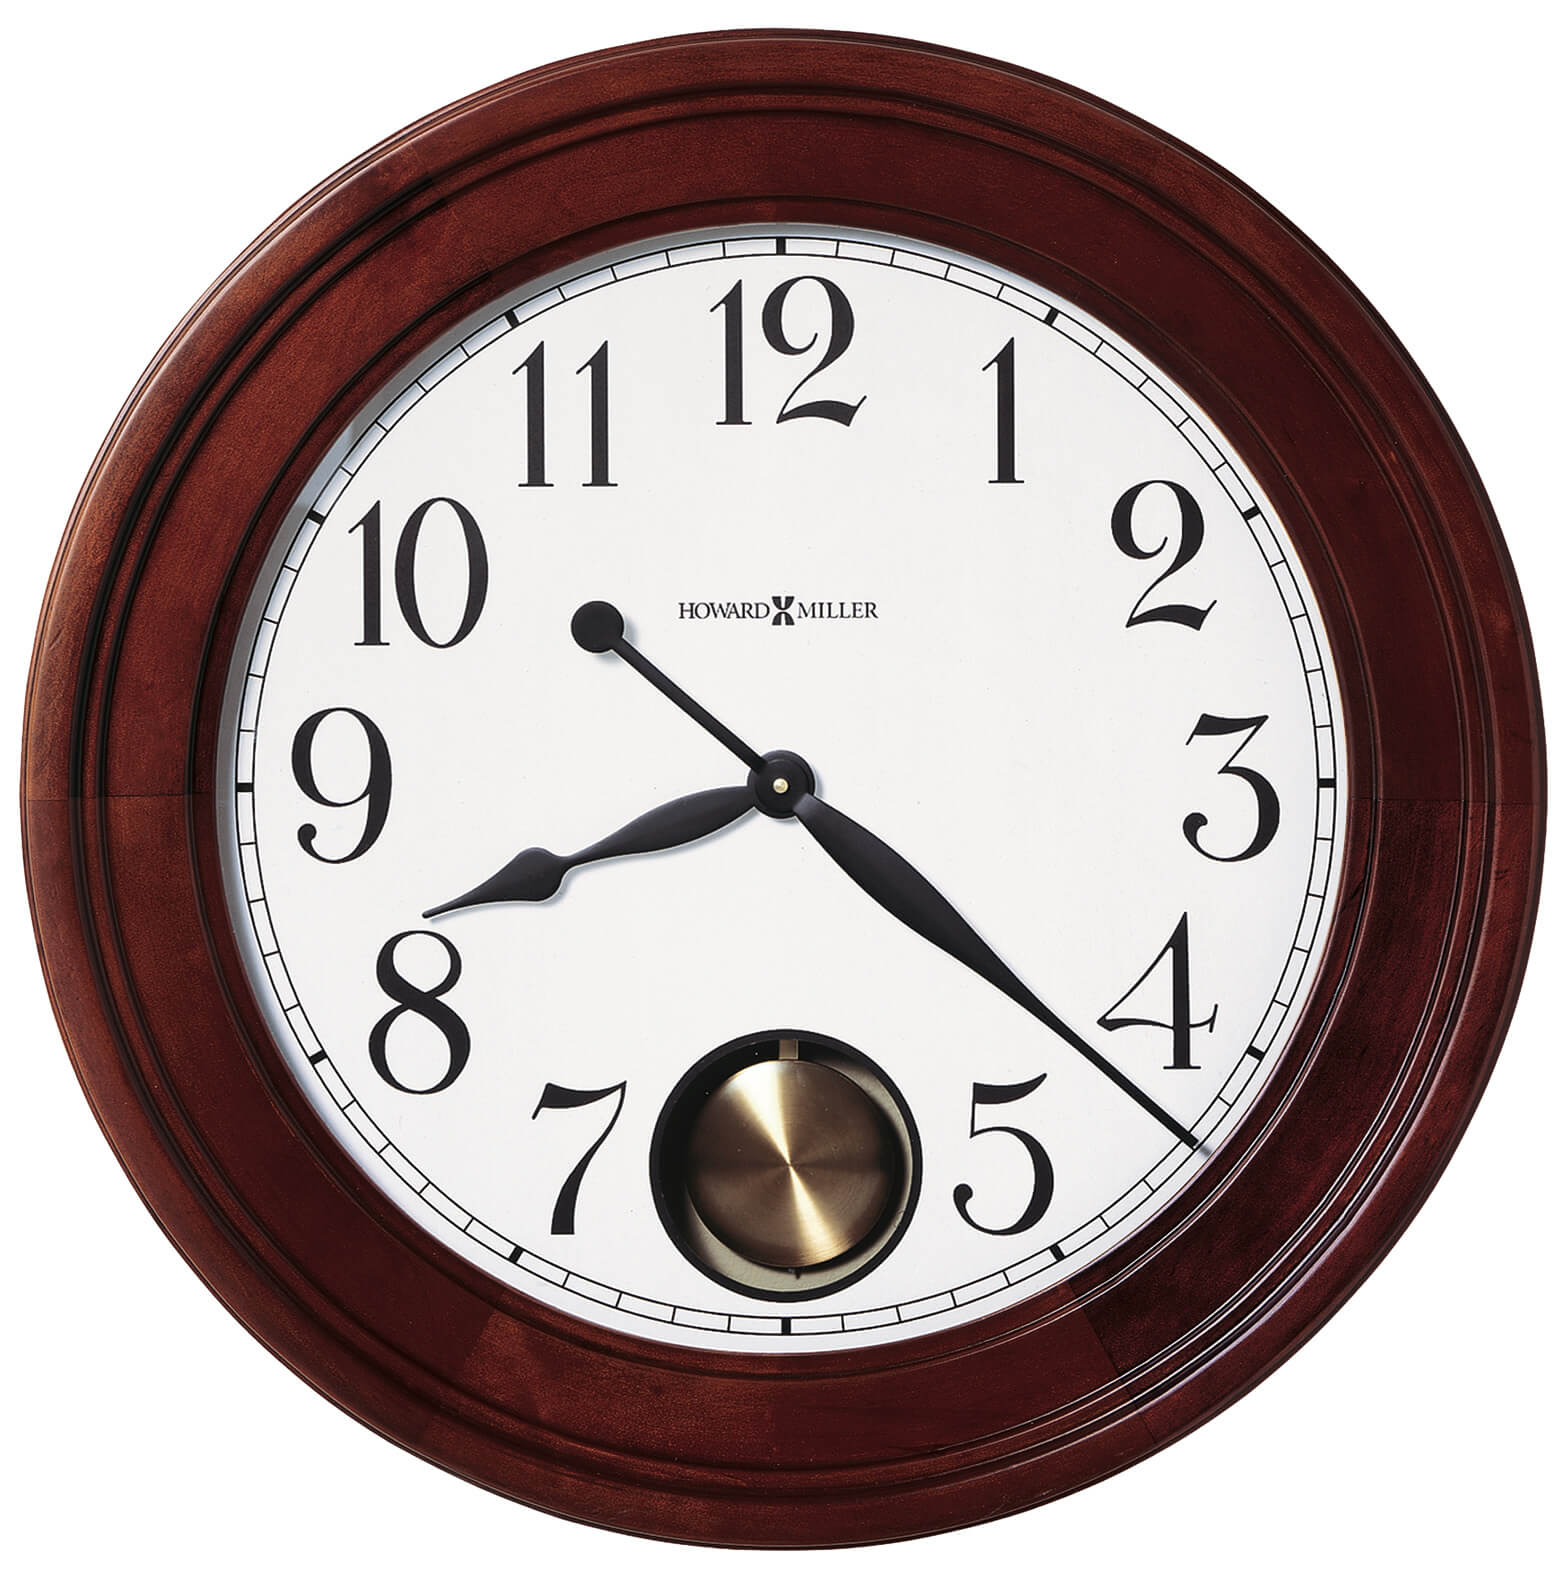 Howard miller griffith 625 314 wall clocks oversized for Howard miller large wall clock